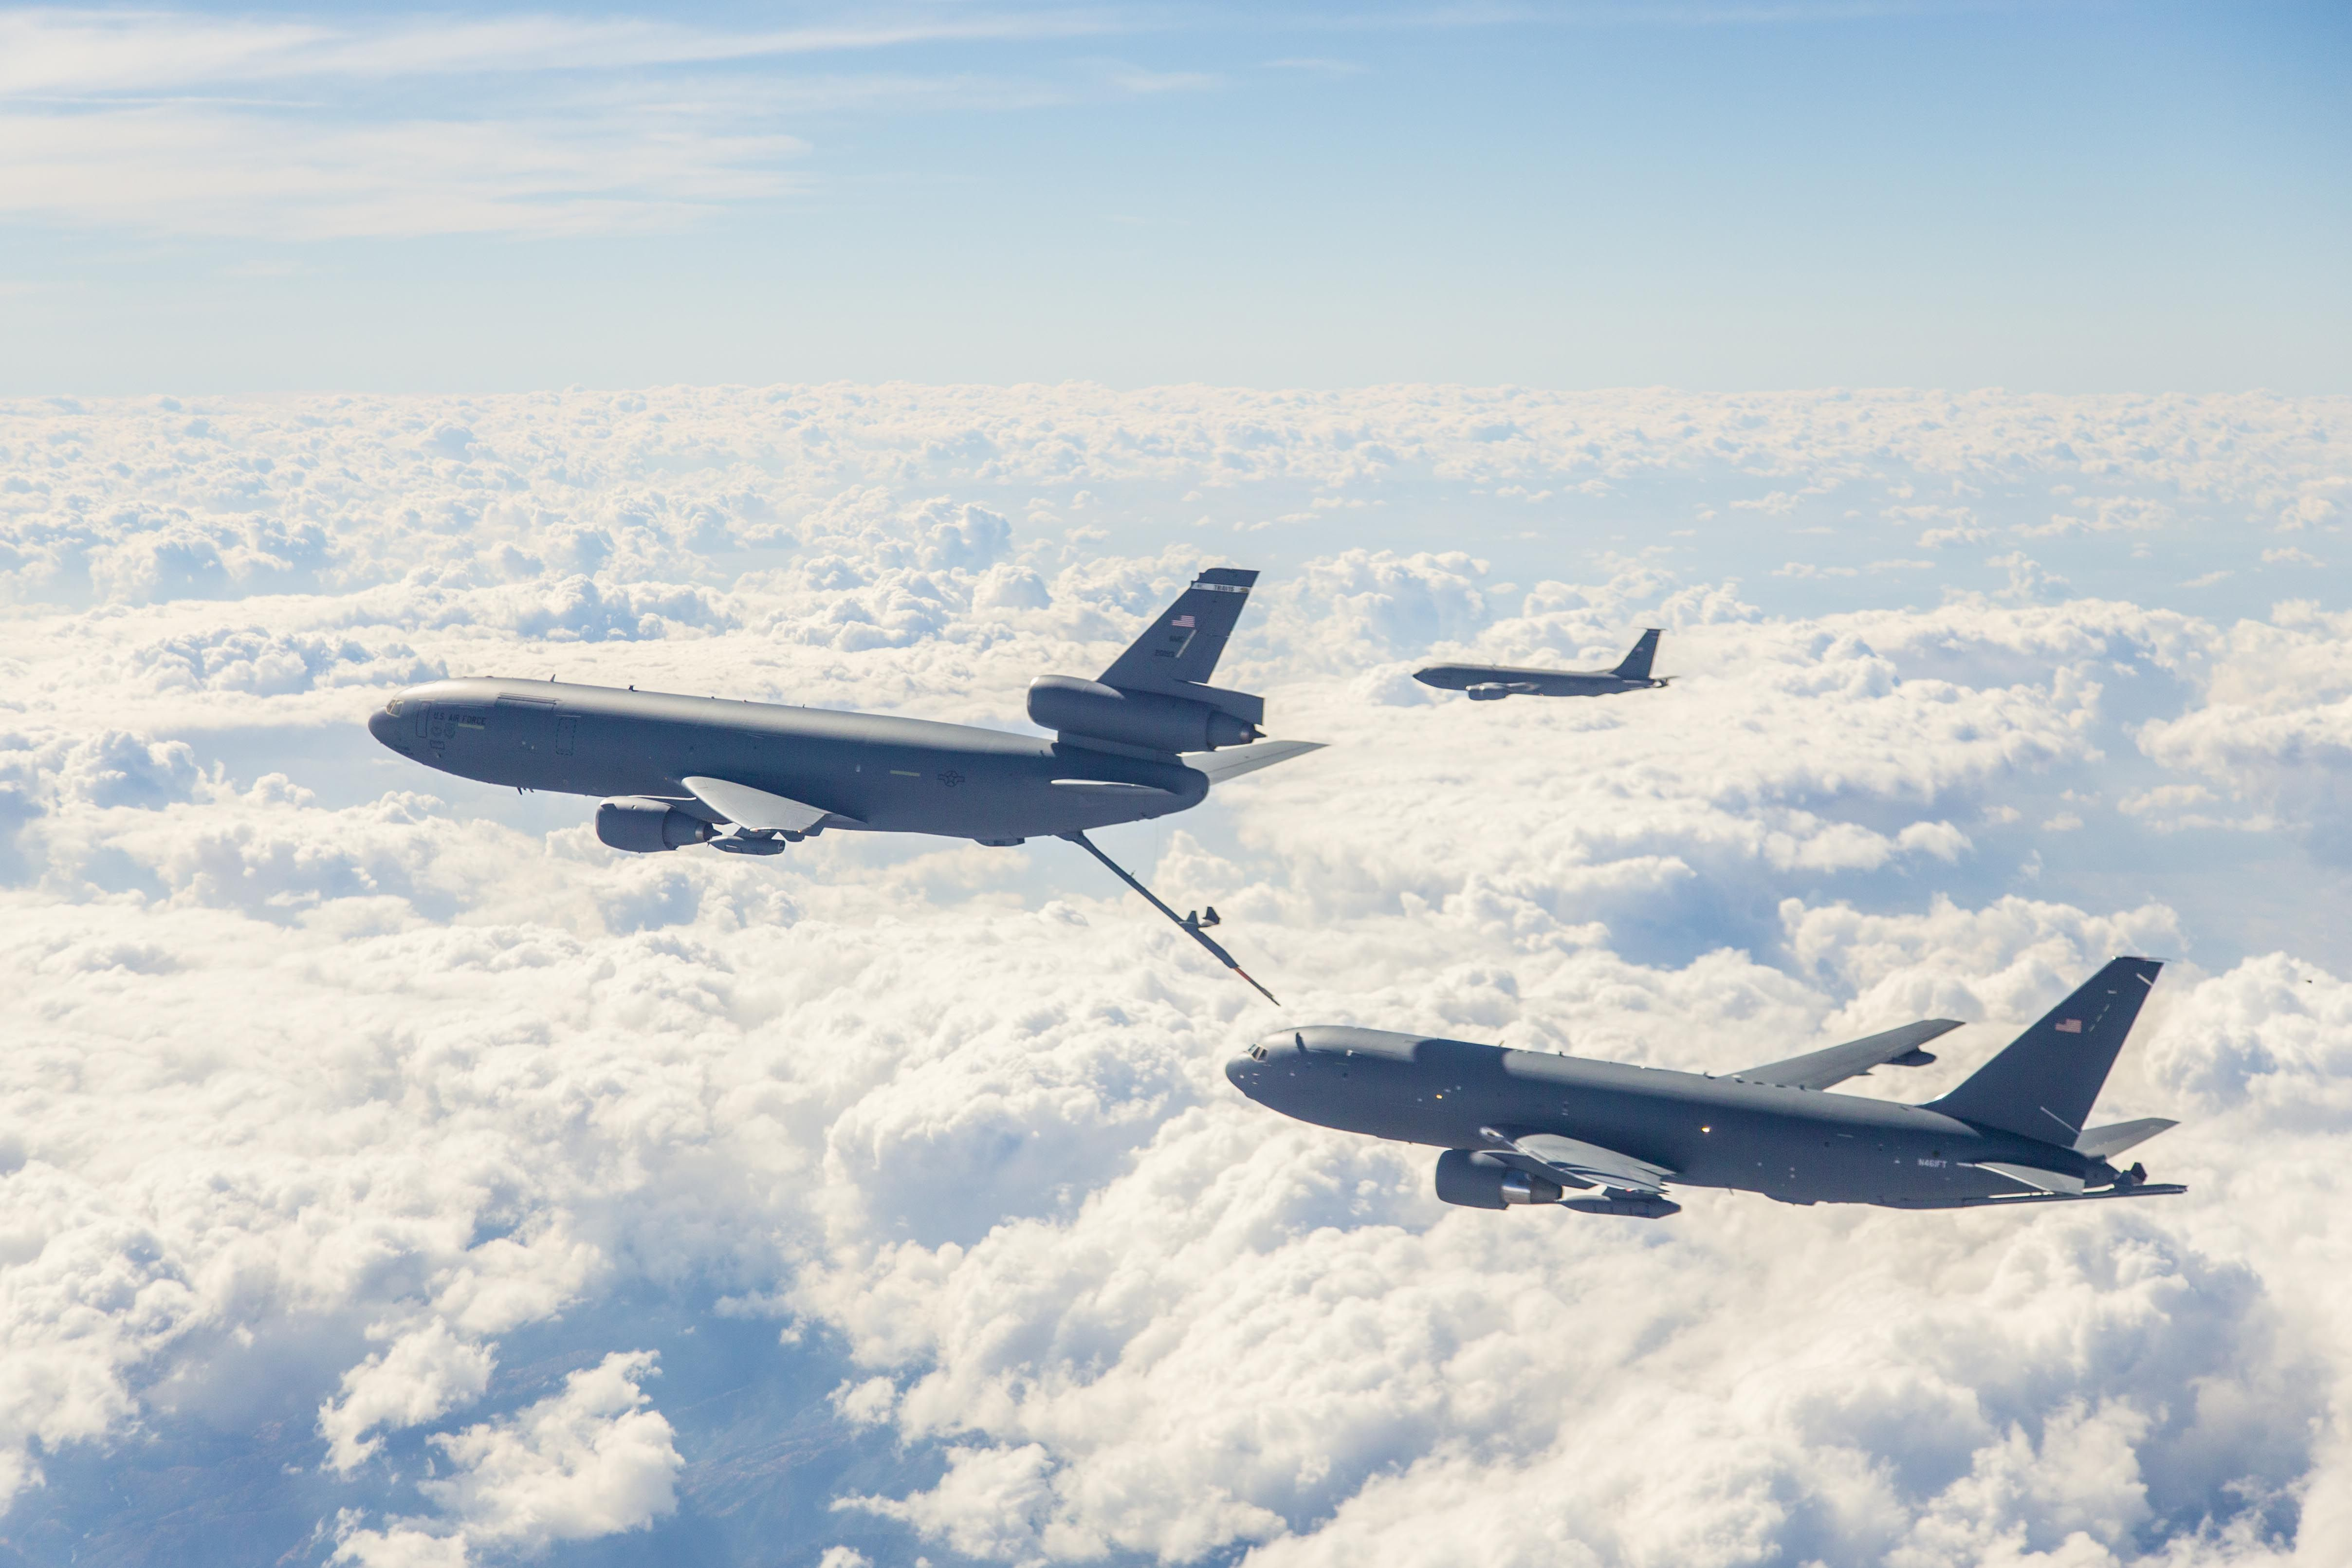 EDWARDS AIR FORCE BASE, Calif.-KC-46 program's first test aircraft,Boeing 767-2C (EMD-1), departed from home at Boeing Field in Seattle and touched down at Edwards for first time Oct. 15.Plan is to have the 767-2C here for about two weeks.Boeing and 418th Flight Test Squadron conducting Ground Effects and Fuel Onload Fatigue testing on new tanker.Ground Effects testing is to gather aerodynamic data for updating the KC-46A simulator as well as supporting  supporting certification.